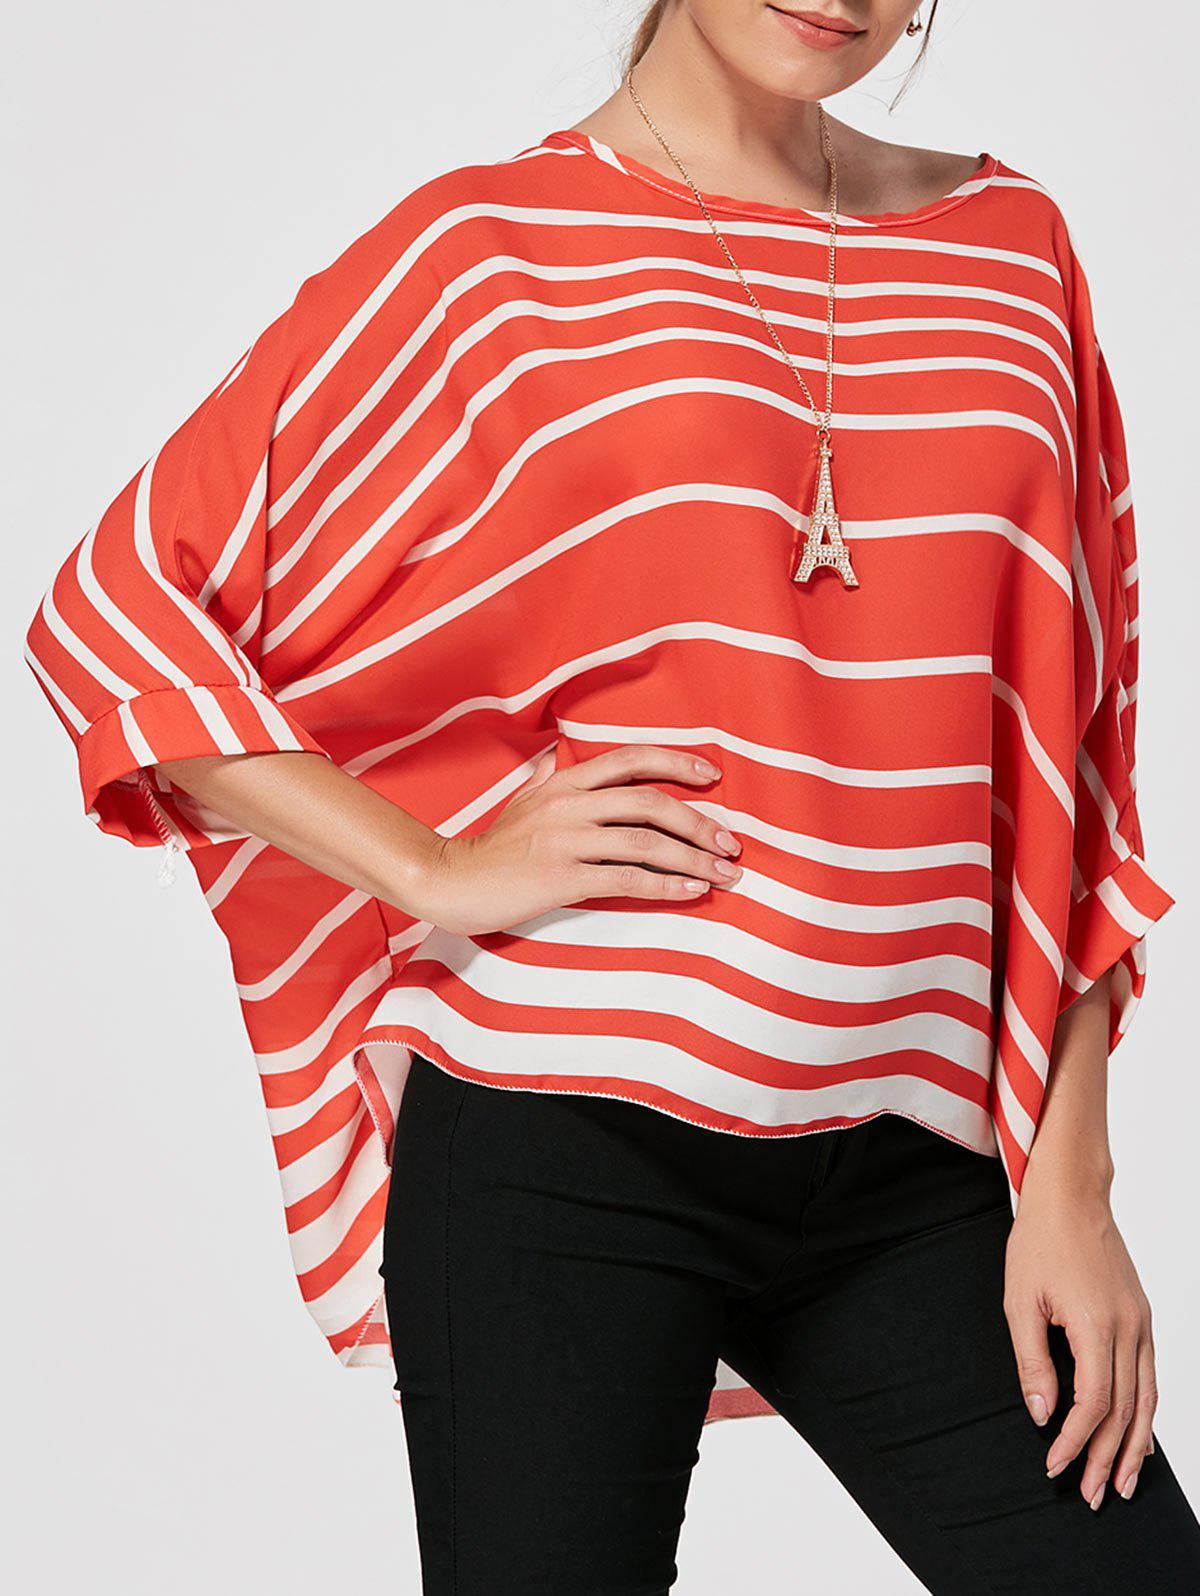 Batwing Sleeve High Low Striped BlouseWOMEN<br><br>Size: XL; Color: RED; Style: Casual; Material: Polyester; Shirt Length: Regular; Sleeve Length: Three Quarter; Collar: Scoop Neck; Pattern Type: Striped; Weight: 0.1650kg; Package Contents: 1 x Blouse  1 x Necklace;